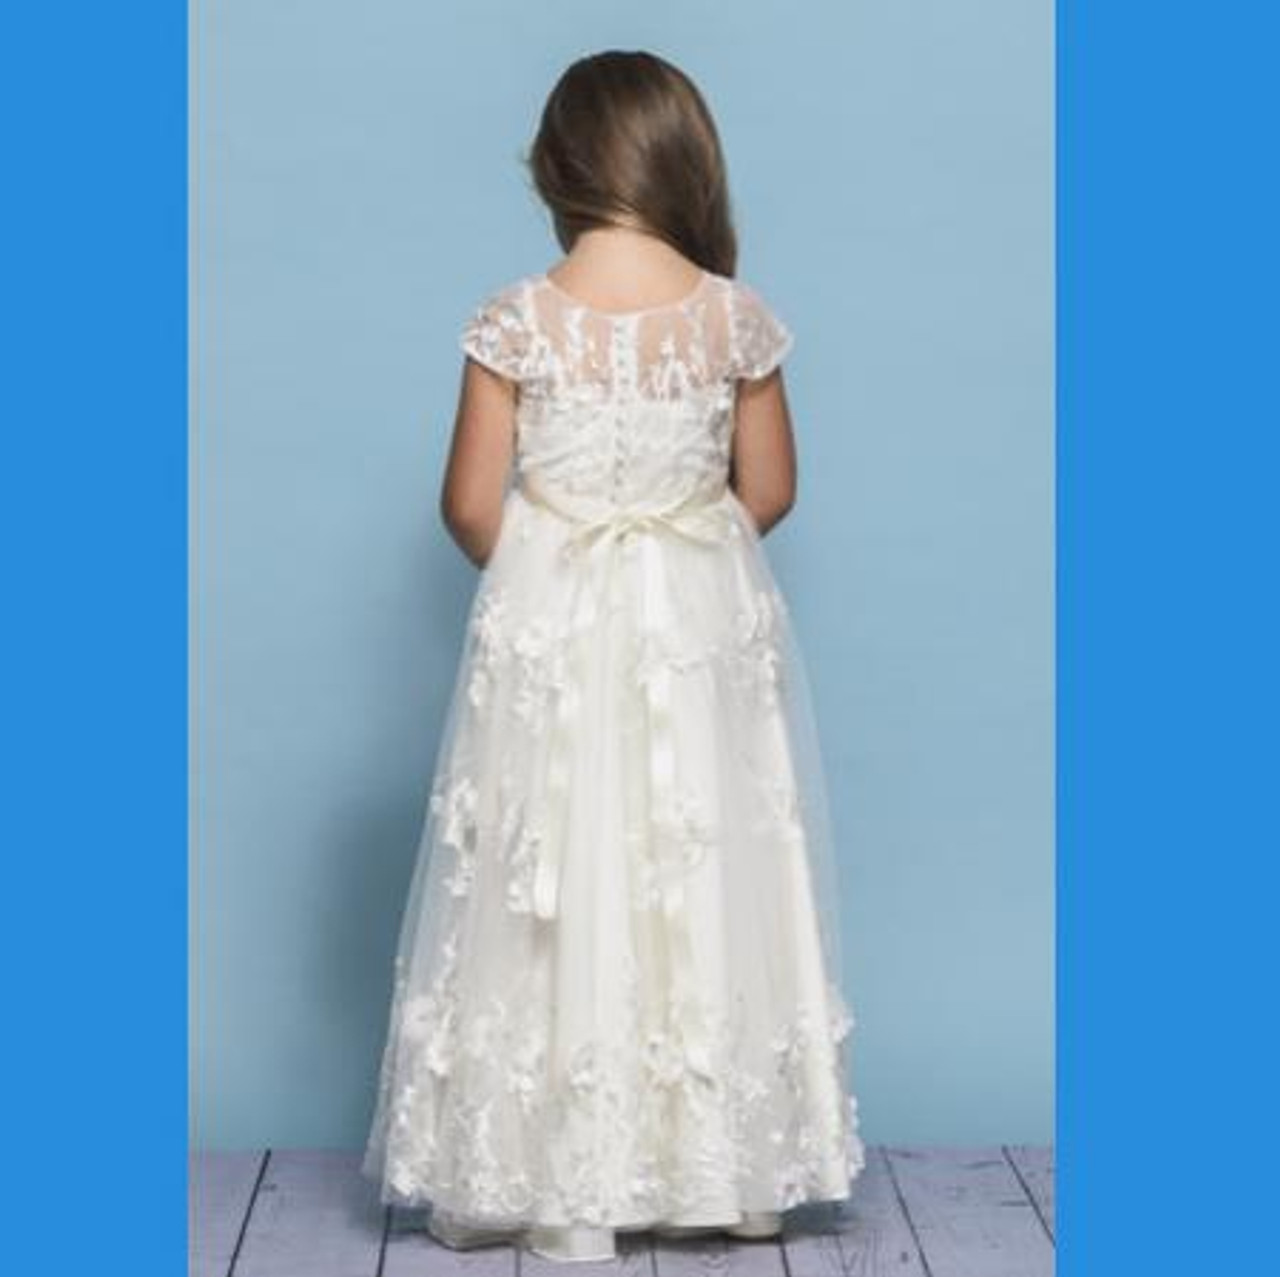 Rosebud Fashions Flower Girl Dresses Style 5137 - Satin and Lace